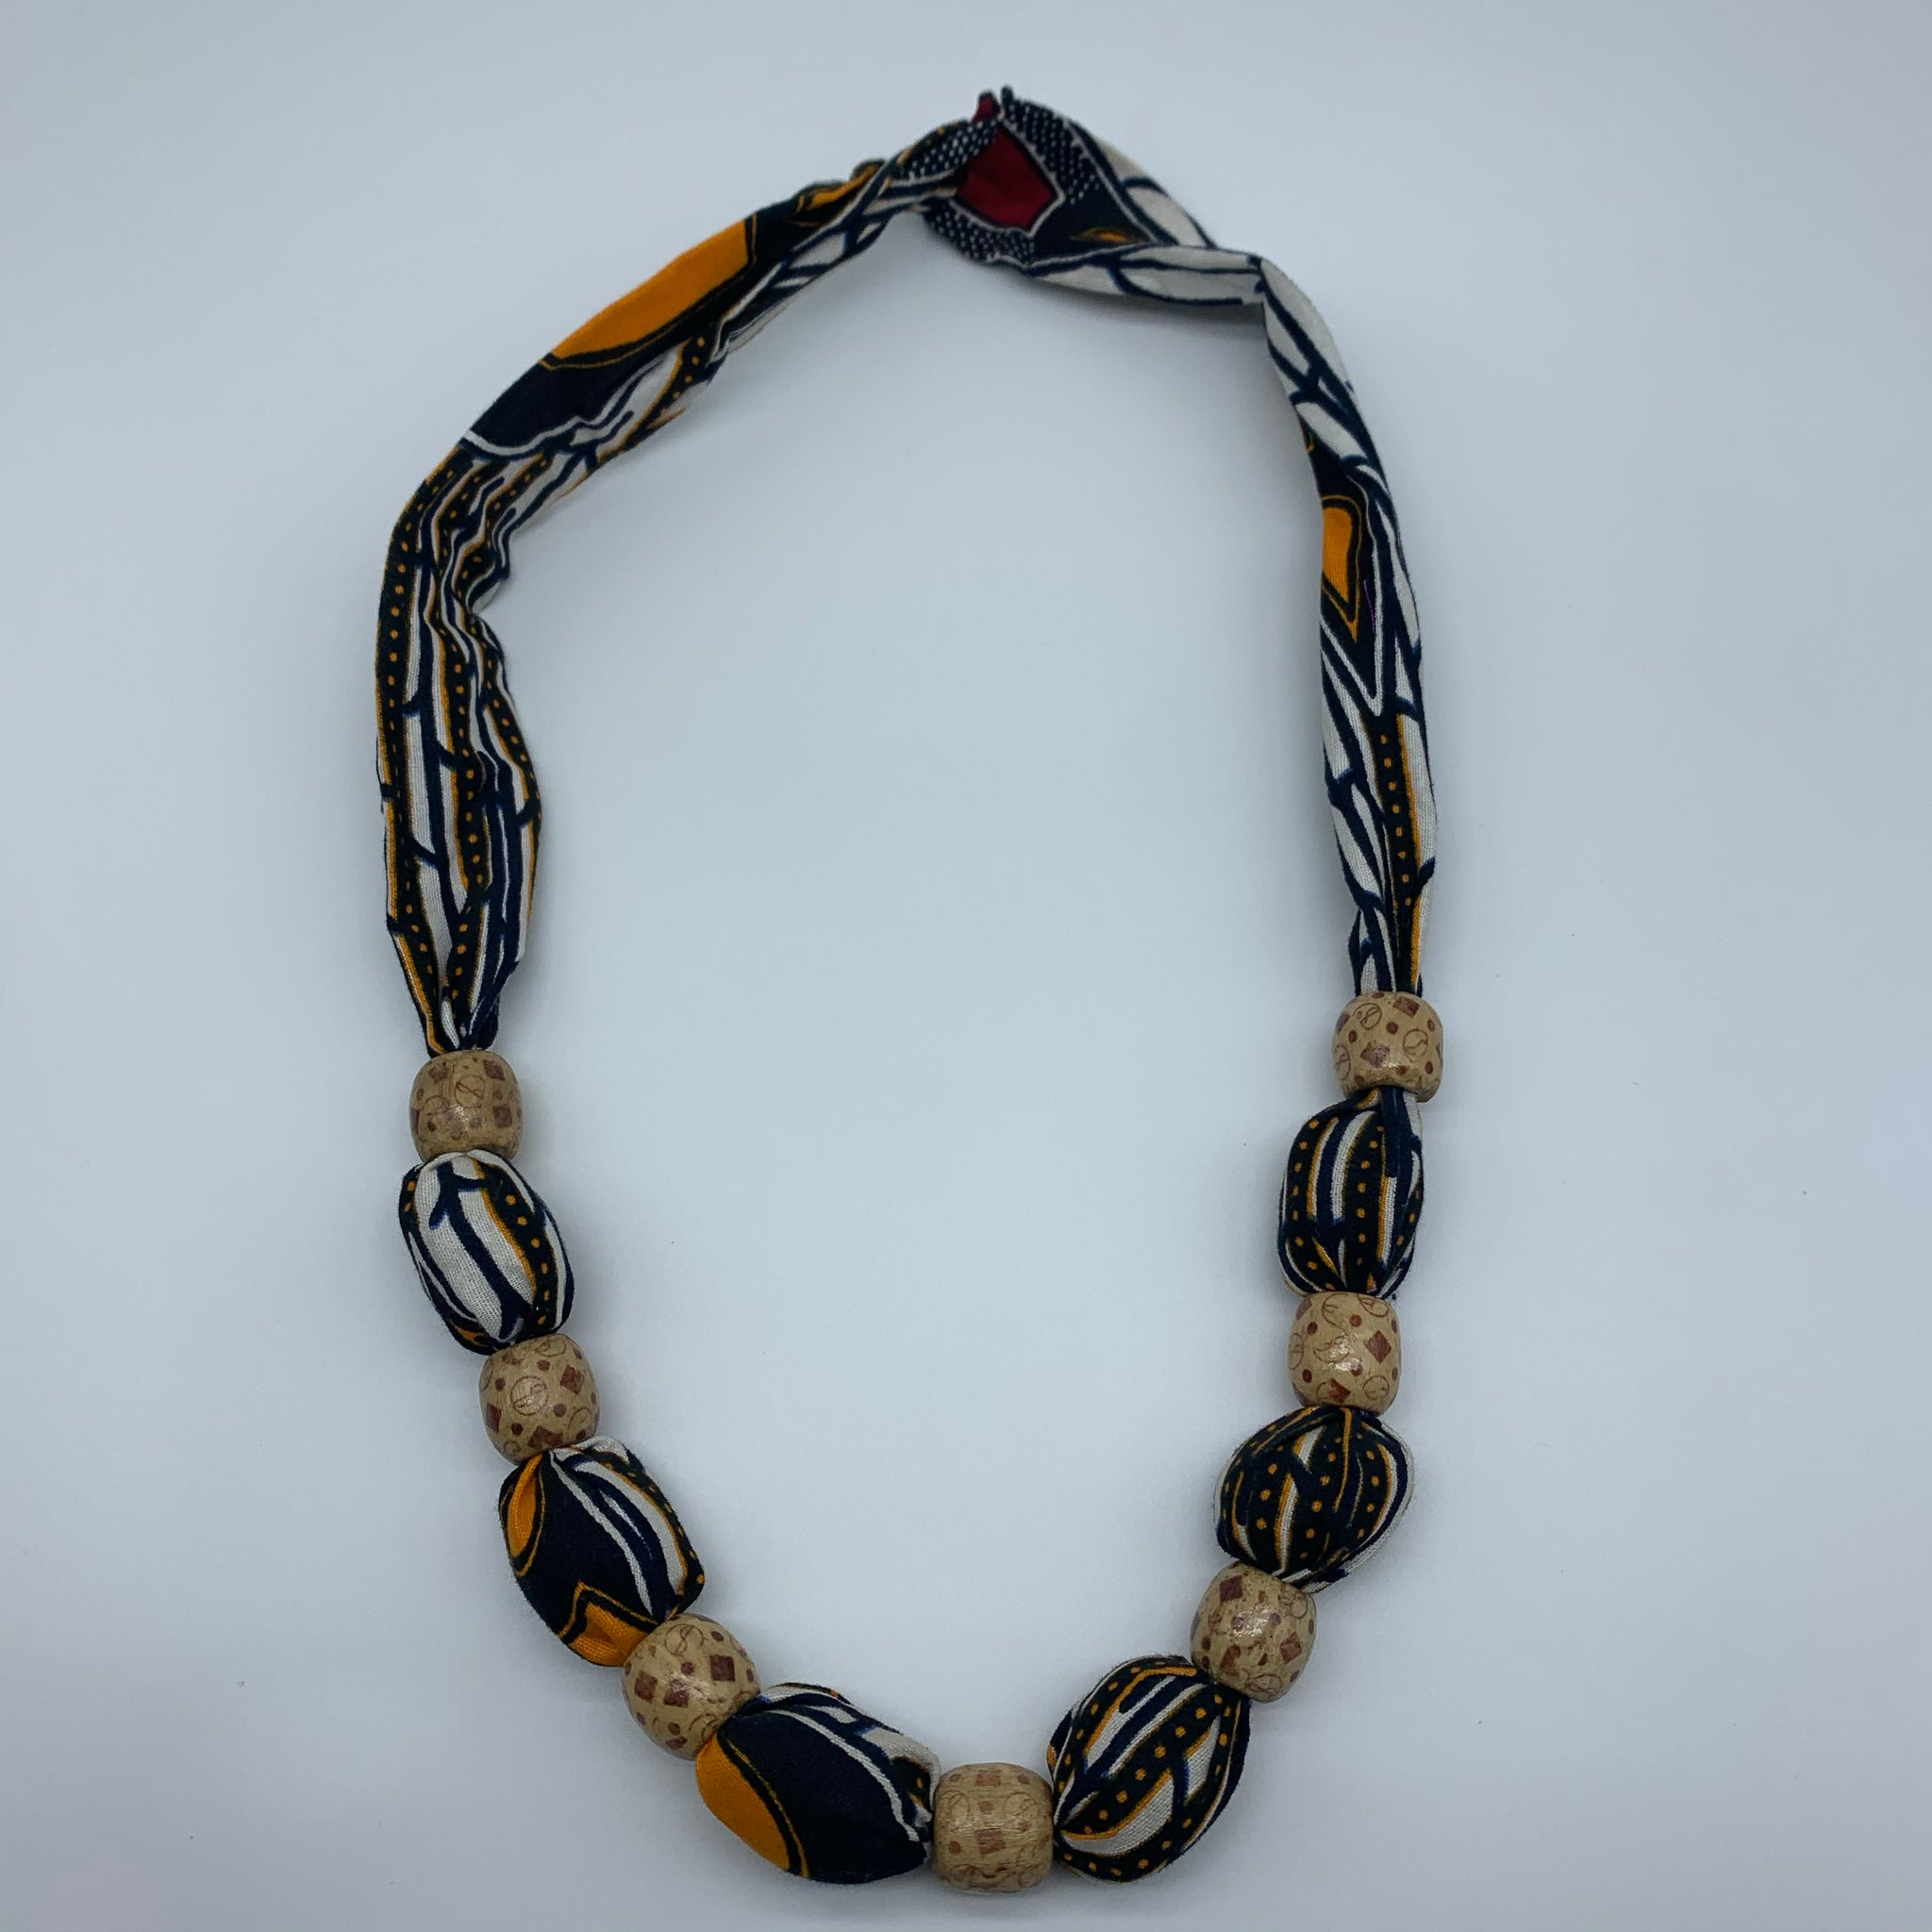 African Print Necklace W/Wooden Beads-Black Variation 3